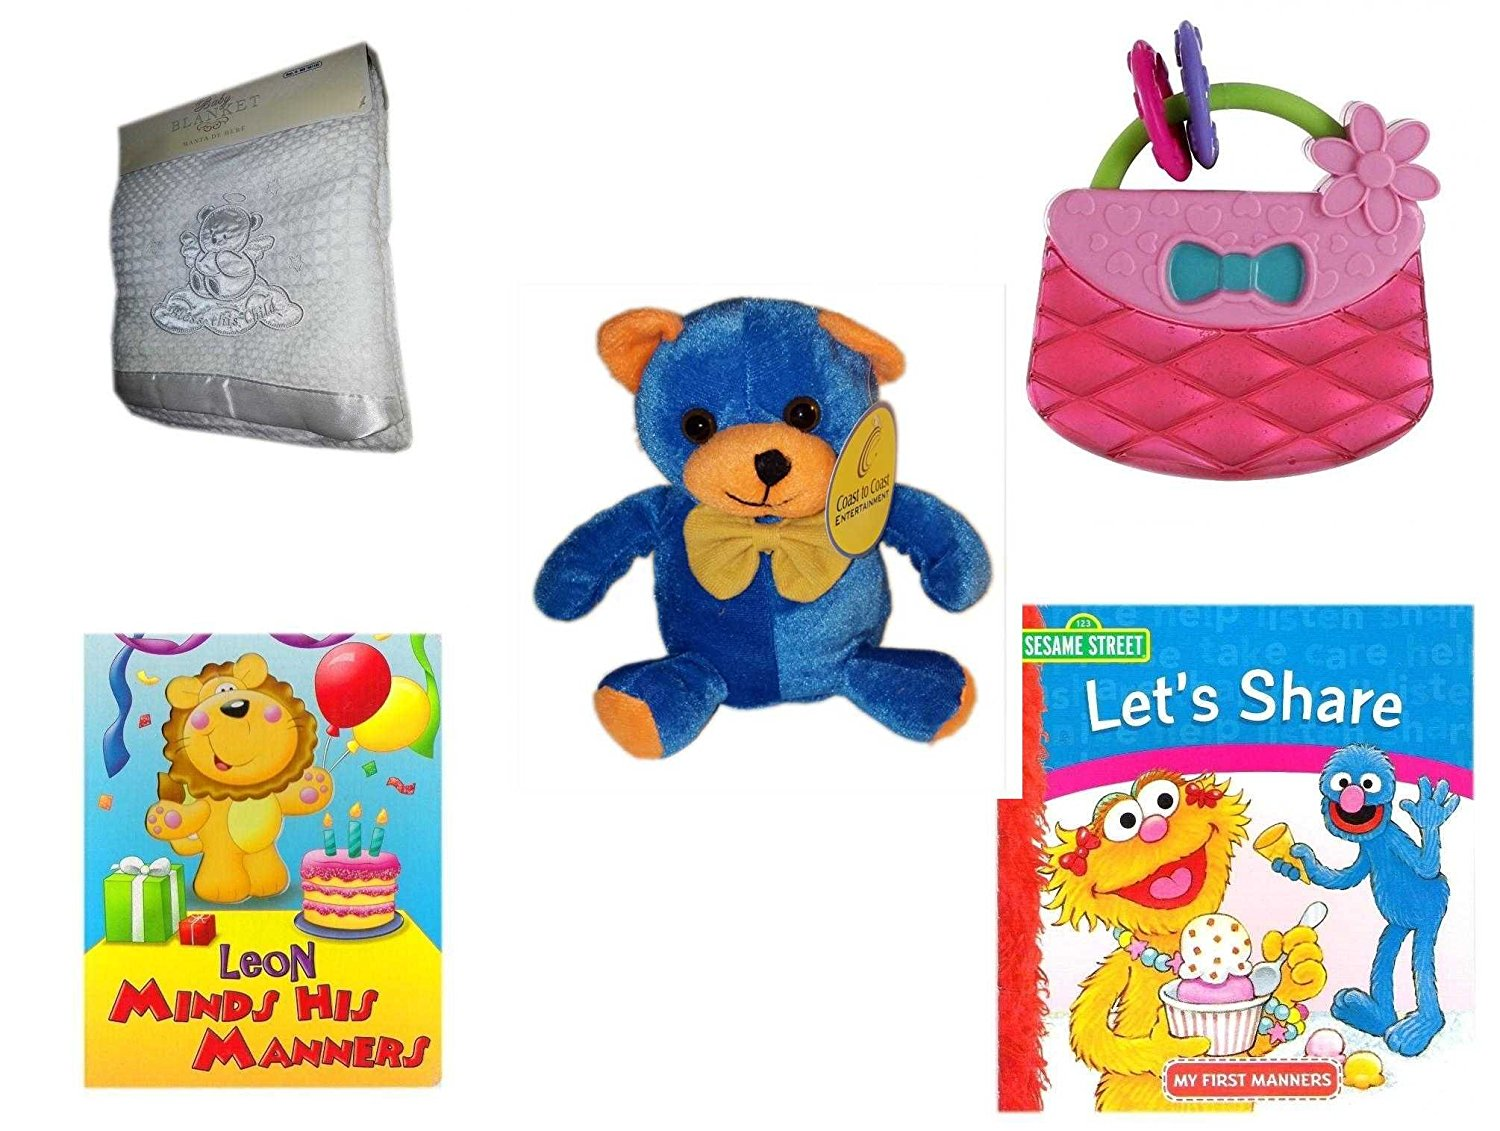 """Children's Gift Bundle - Ages 0-2 [5 Piece] - Soft White """"Bless This Child"""" Baby Blanket - Bright Starts Pretty in Pink Carry Teethe Purse - Blue & Orange Bear 7"""" - Leon Minds His Manners Board Book"""